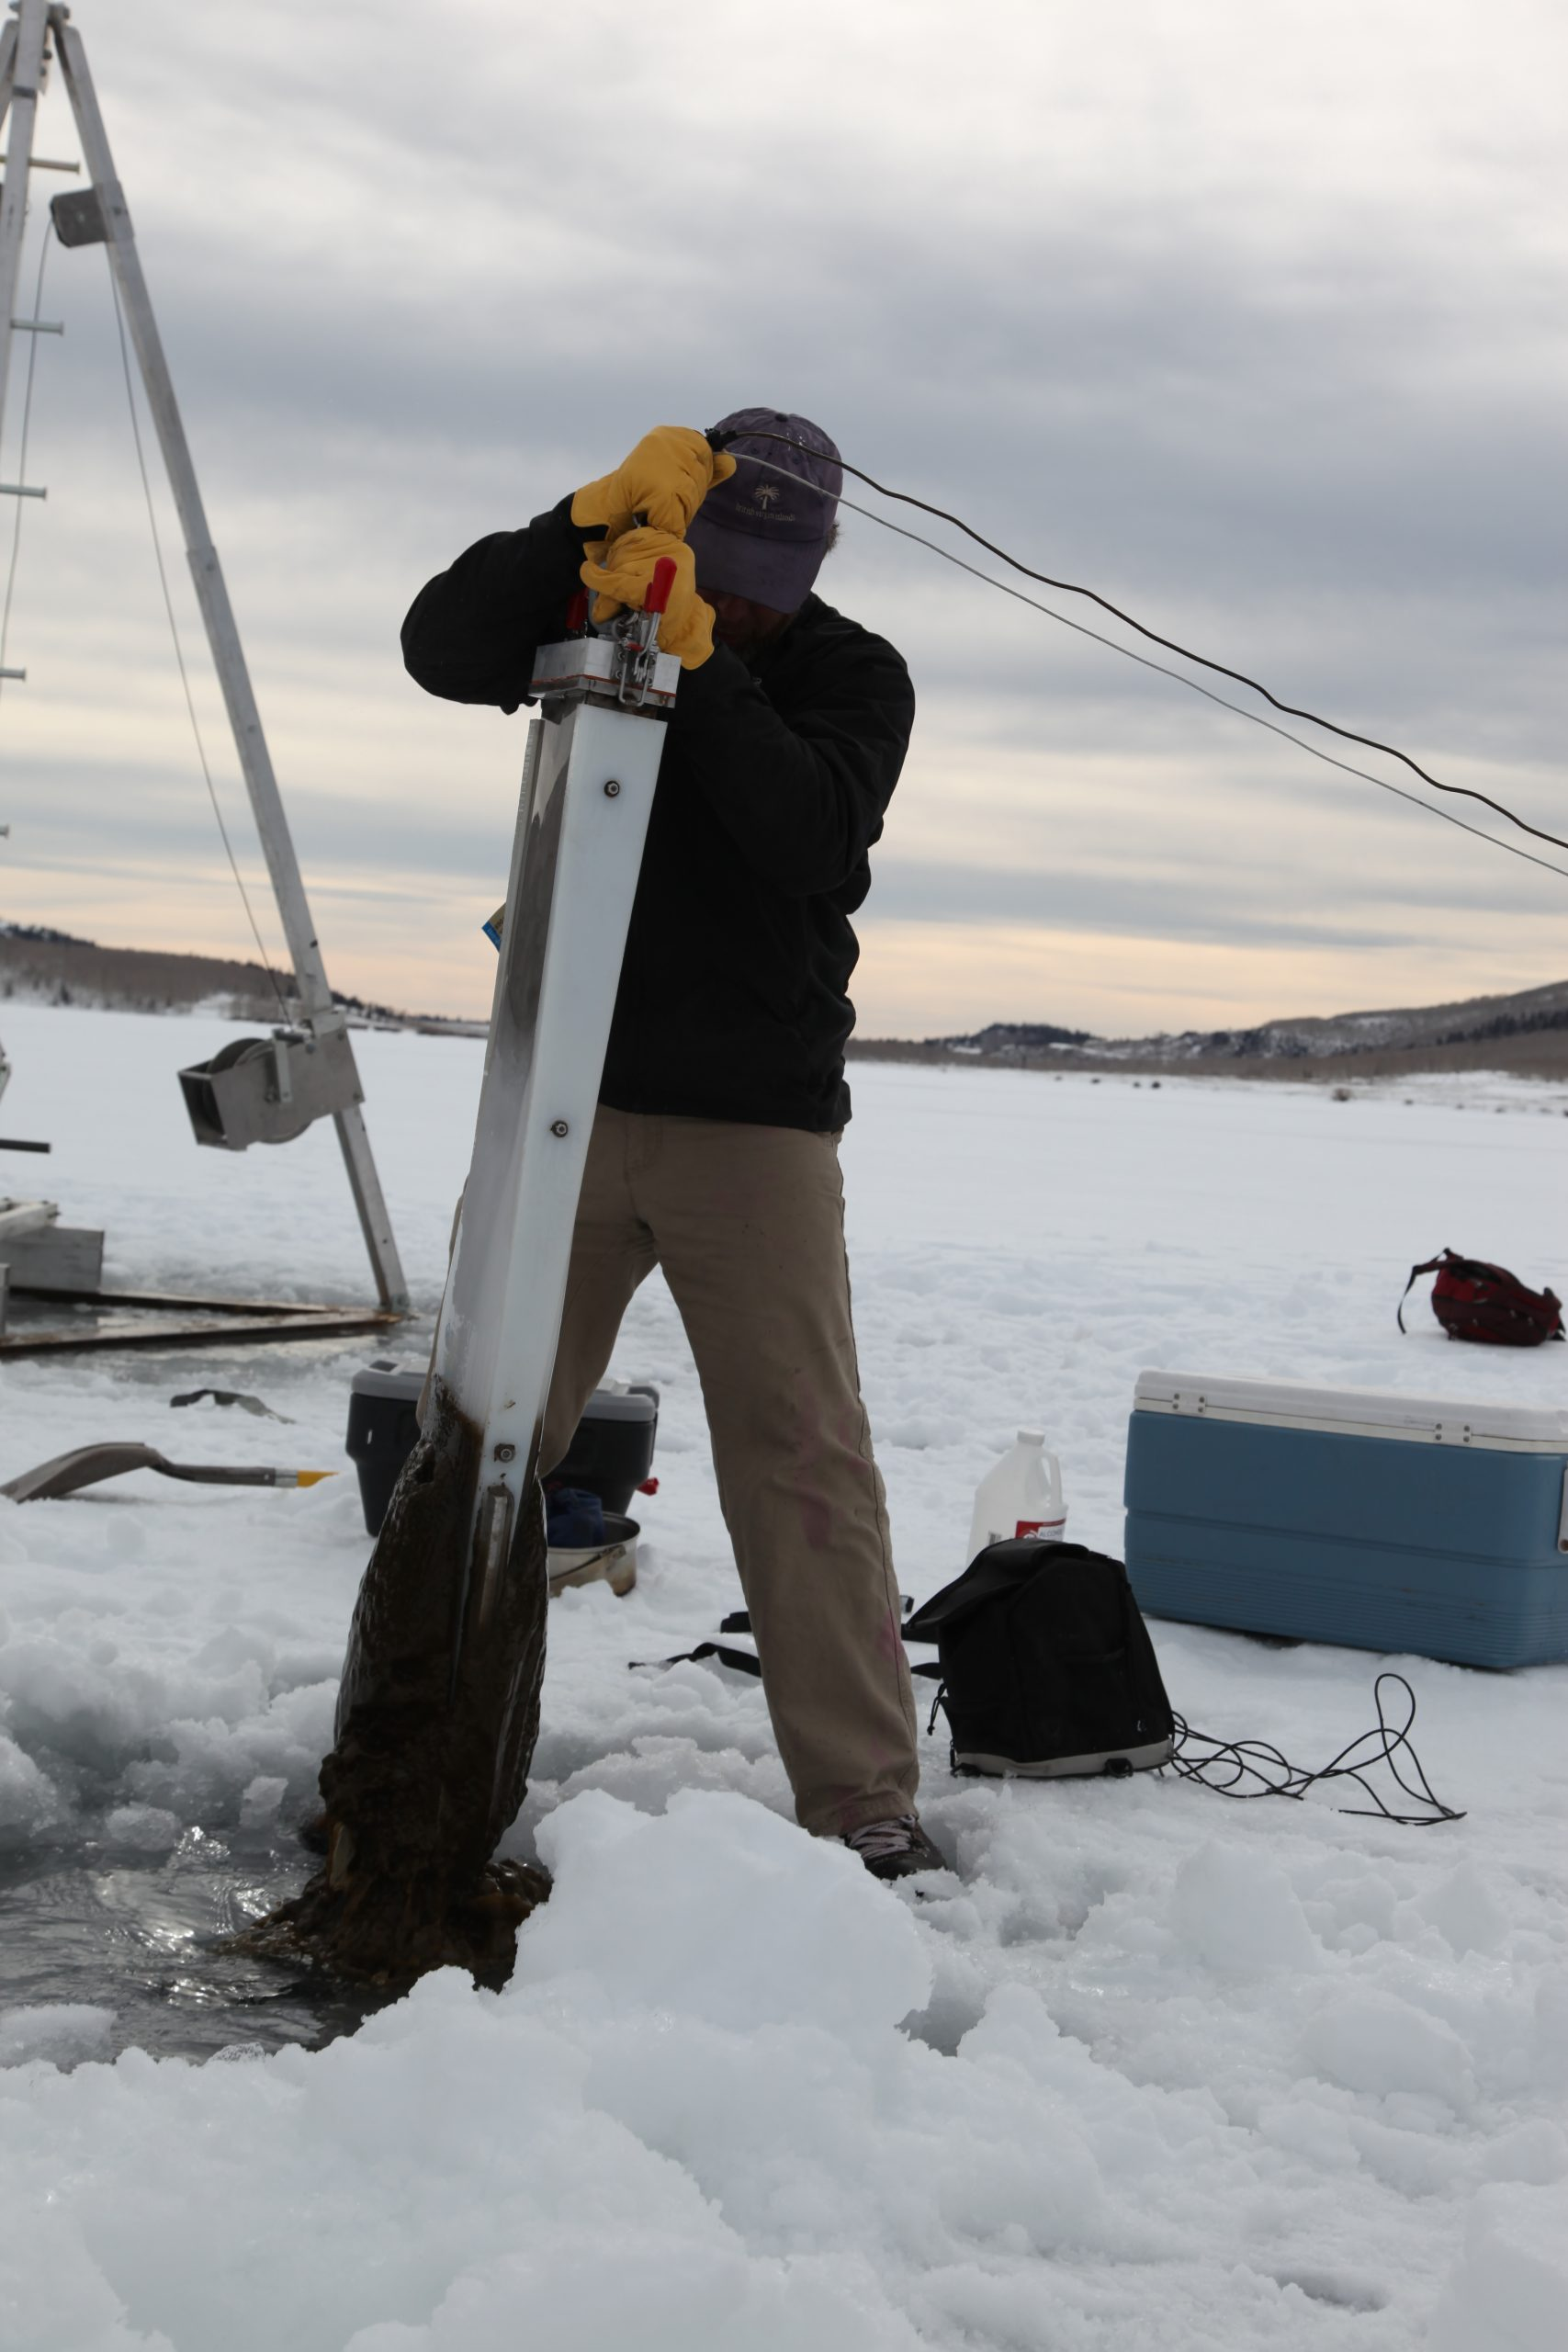 A male science in a black fleece and brown pants, pulls out an ice corer from the lake, a long cylindrical object with mud on the end.